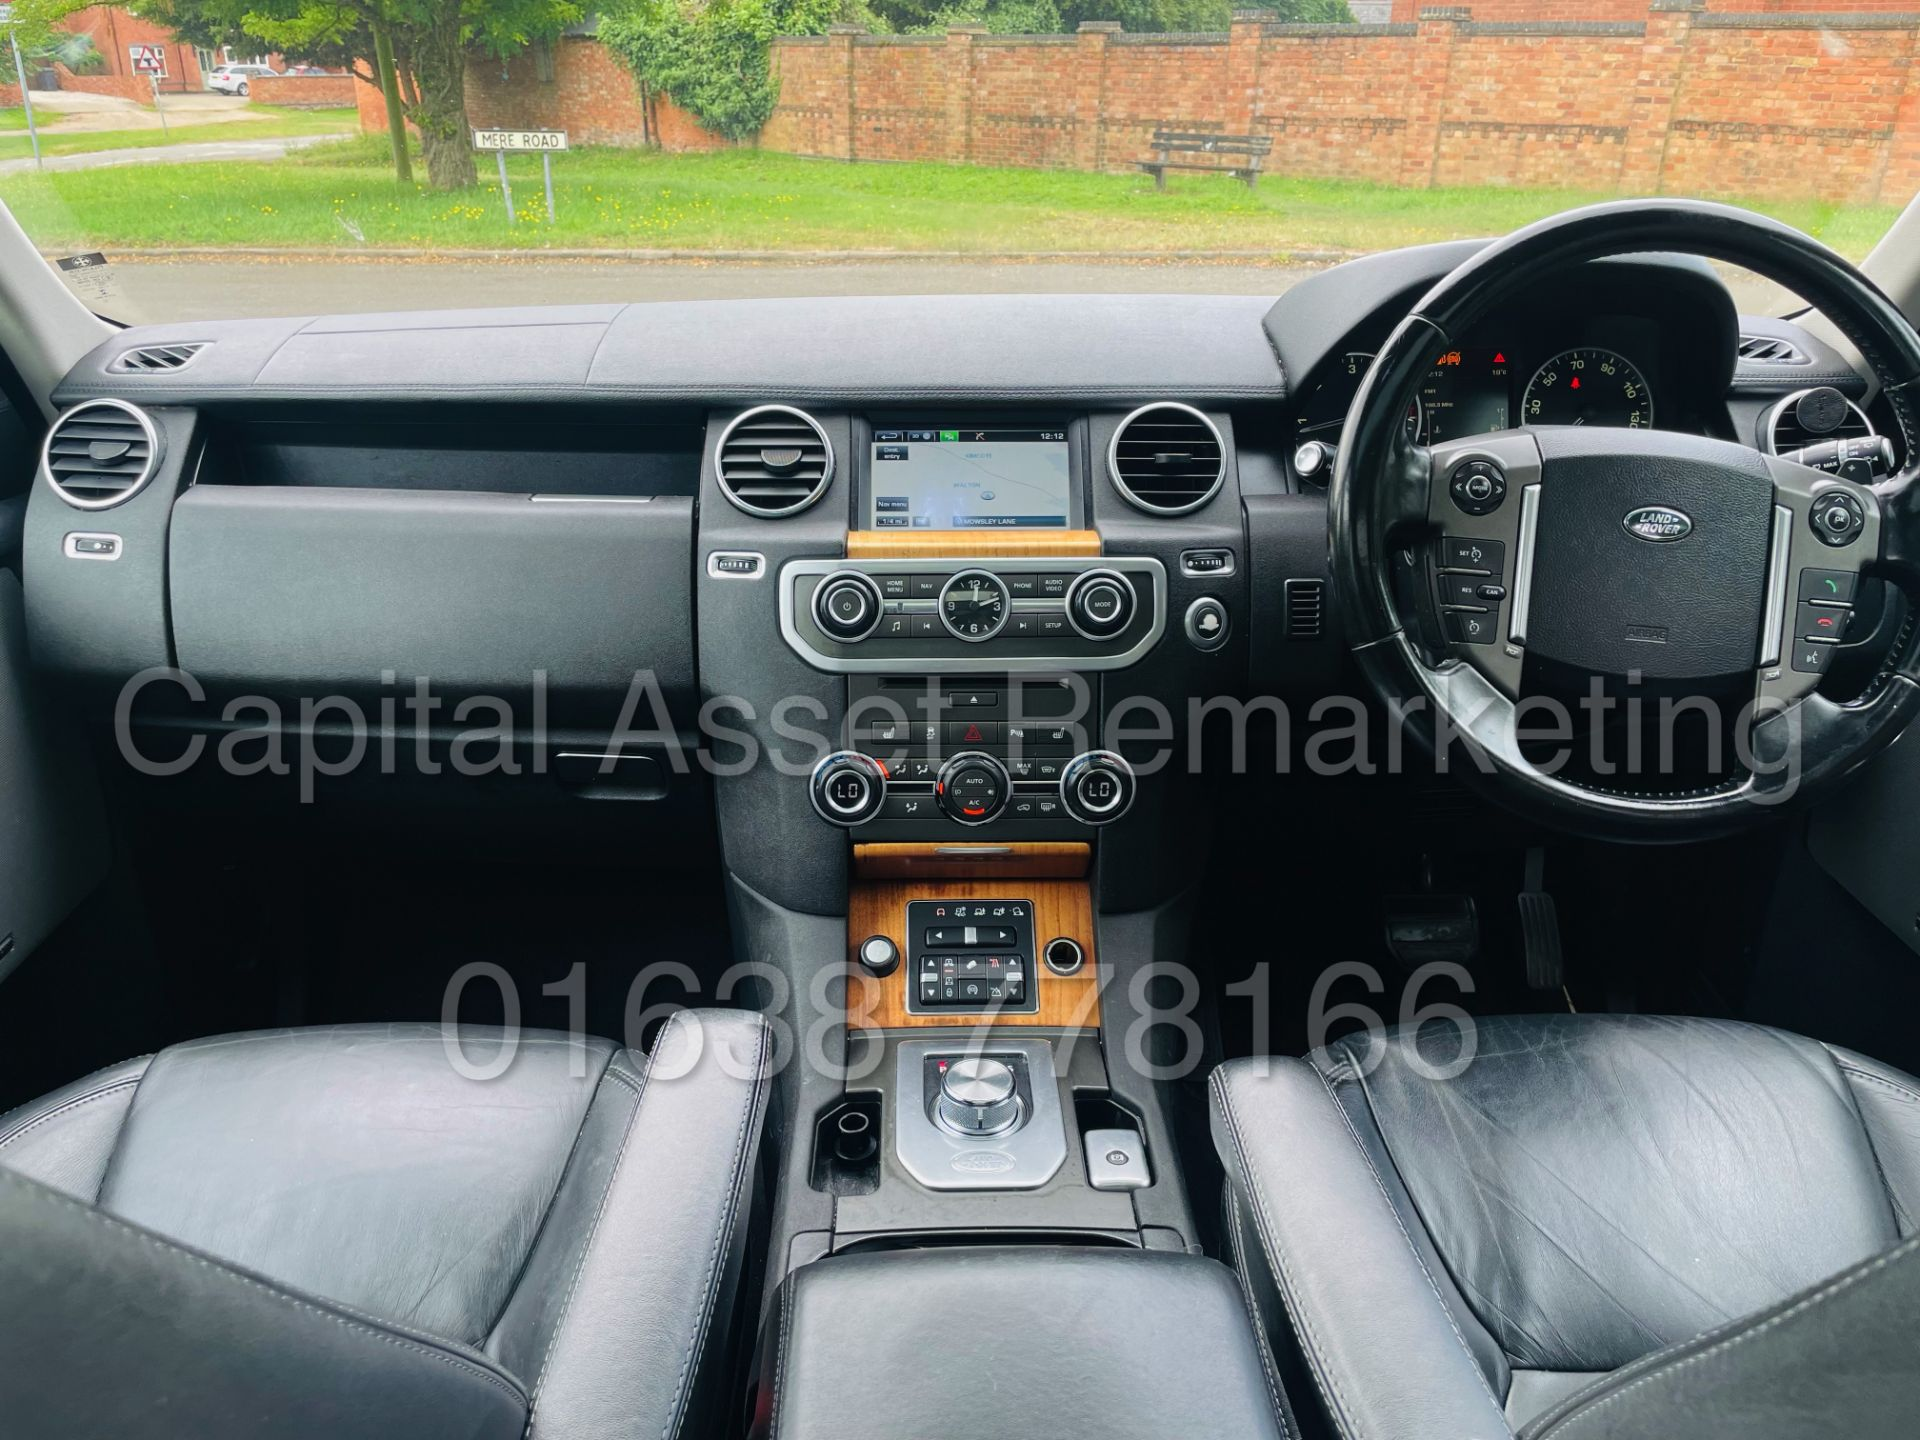 LAND ROVER DISCOVERY 4 *HSE* 7 SEATER SUV (2014 - NEW MODEL) '3.0 SDV6 - 255 BHP - 8 SPEED AUTO' - Image 36 of 61